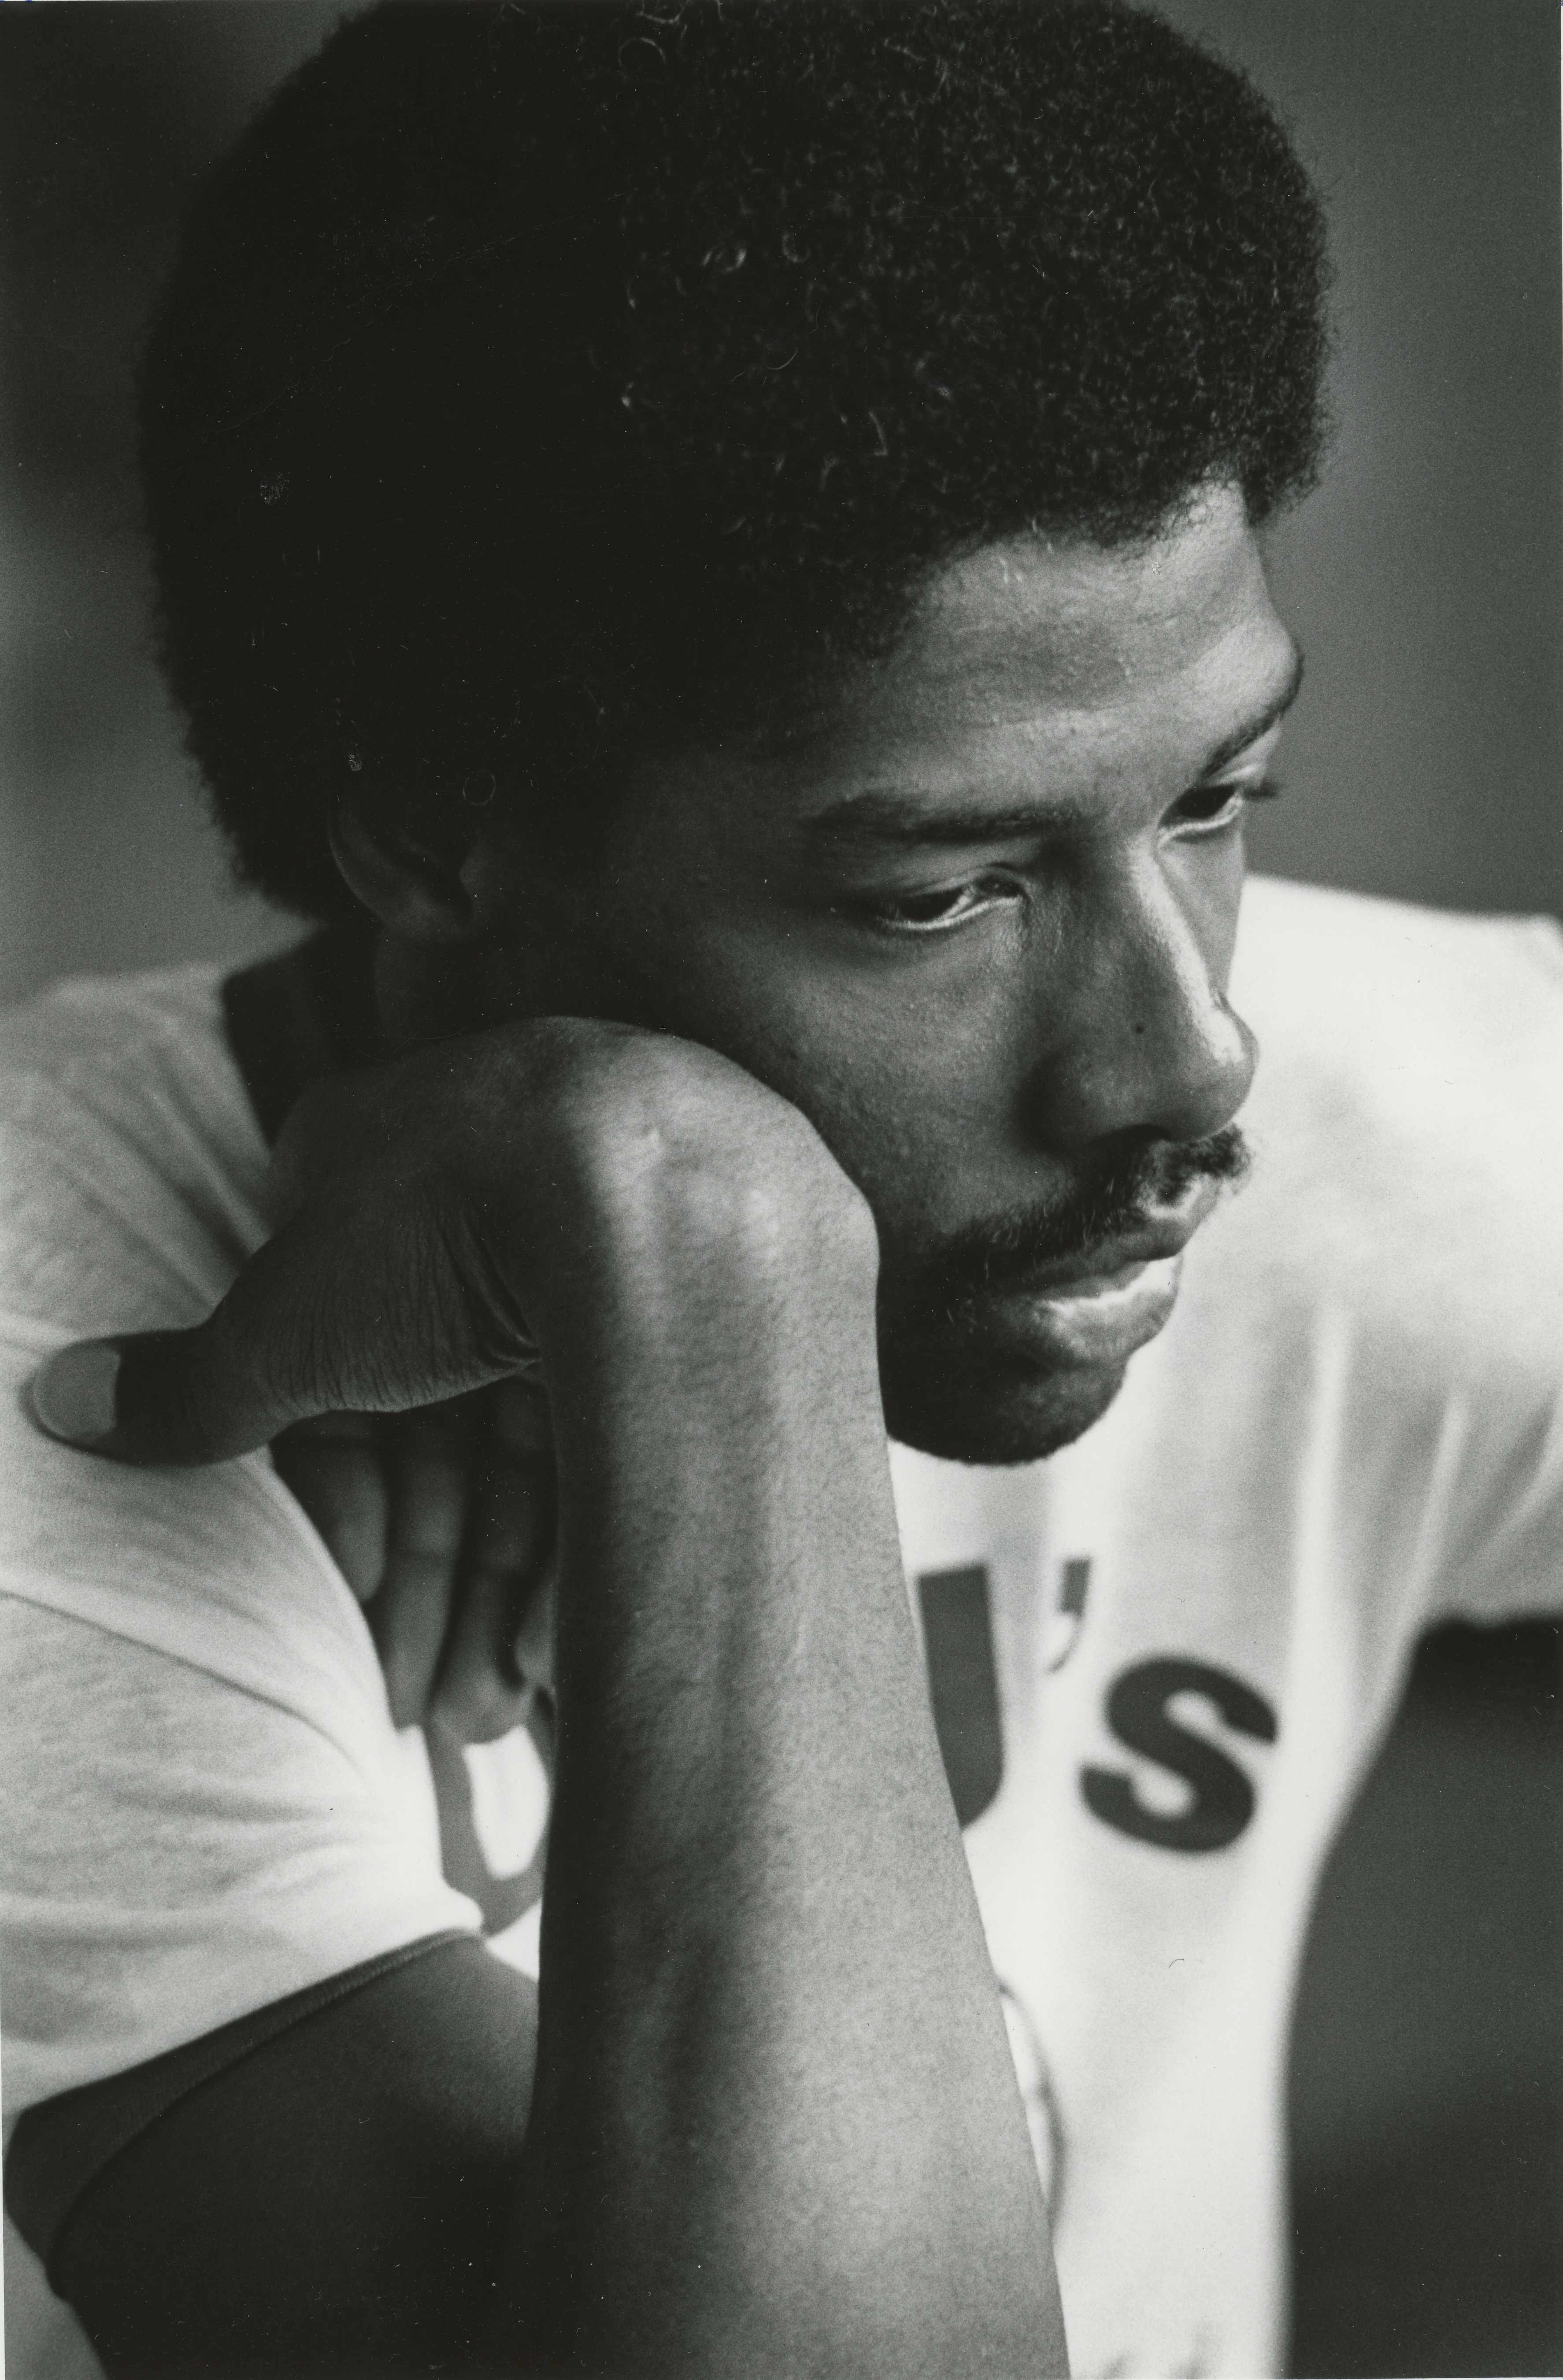 Image of Julius Erving during basketball workshop at UMass, 1980